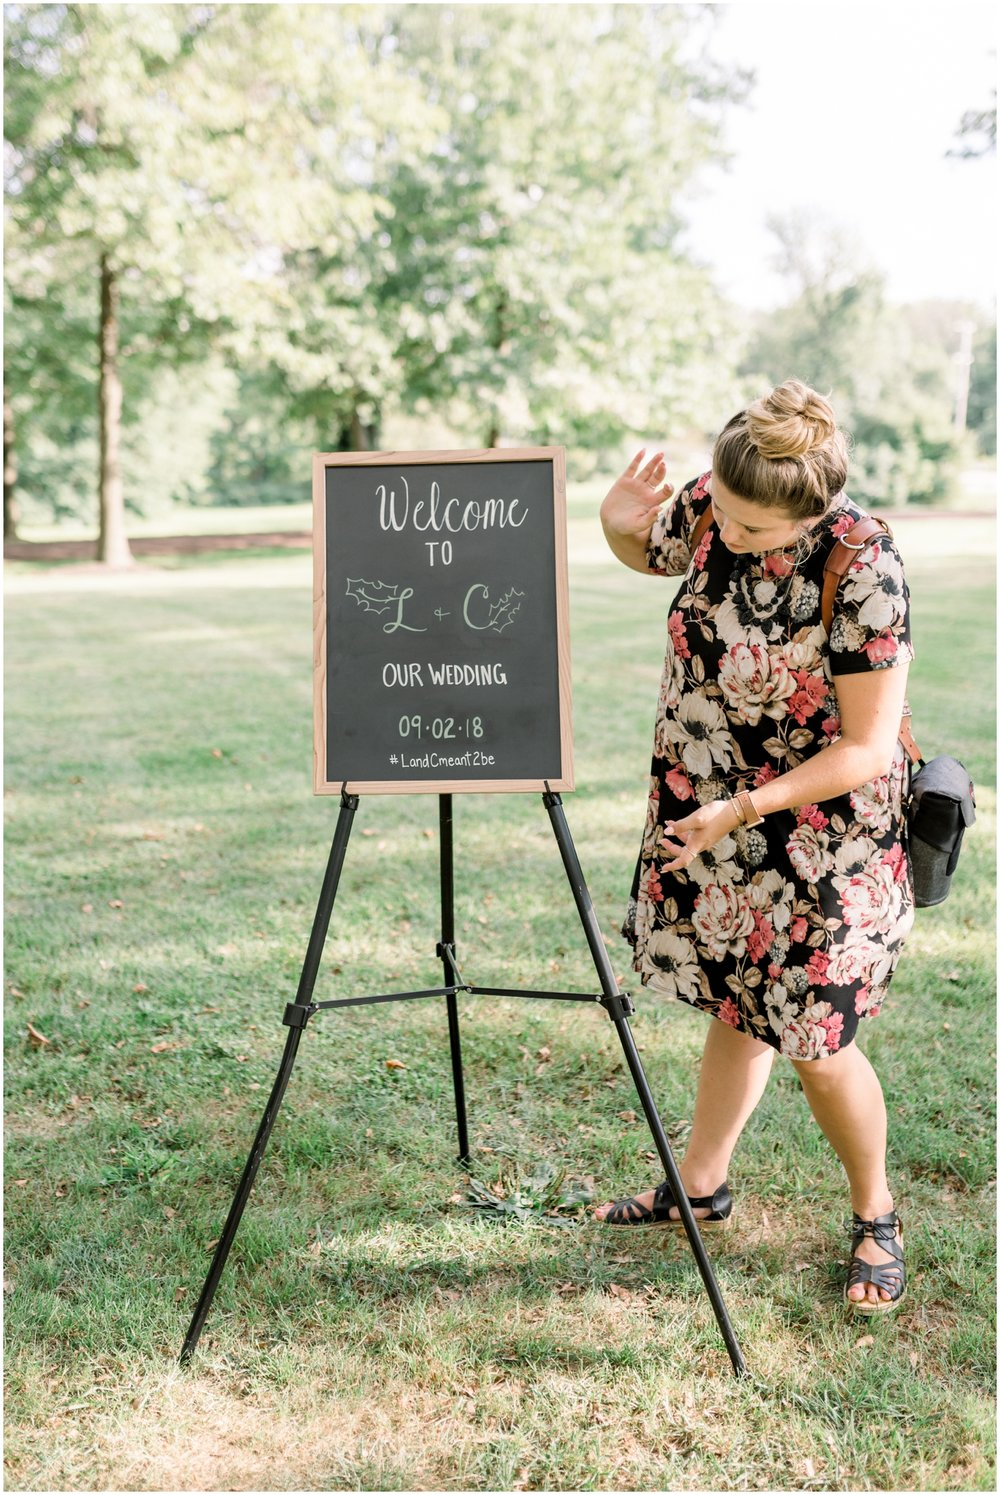 Krista Brackin Photography Behind The Scenes 2018 - Krista Brackin Photography_0028.jpg